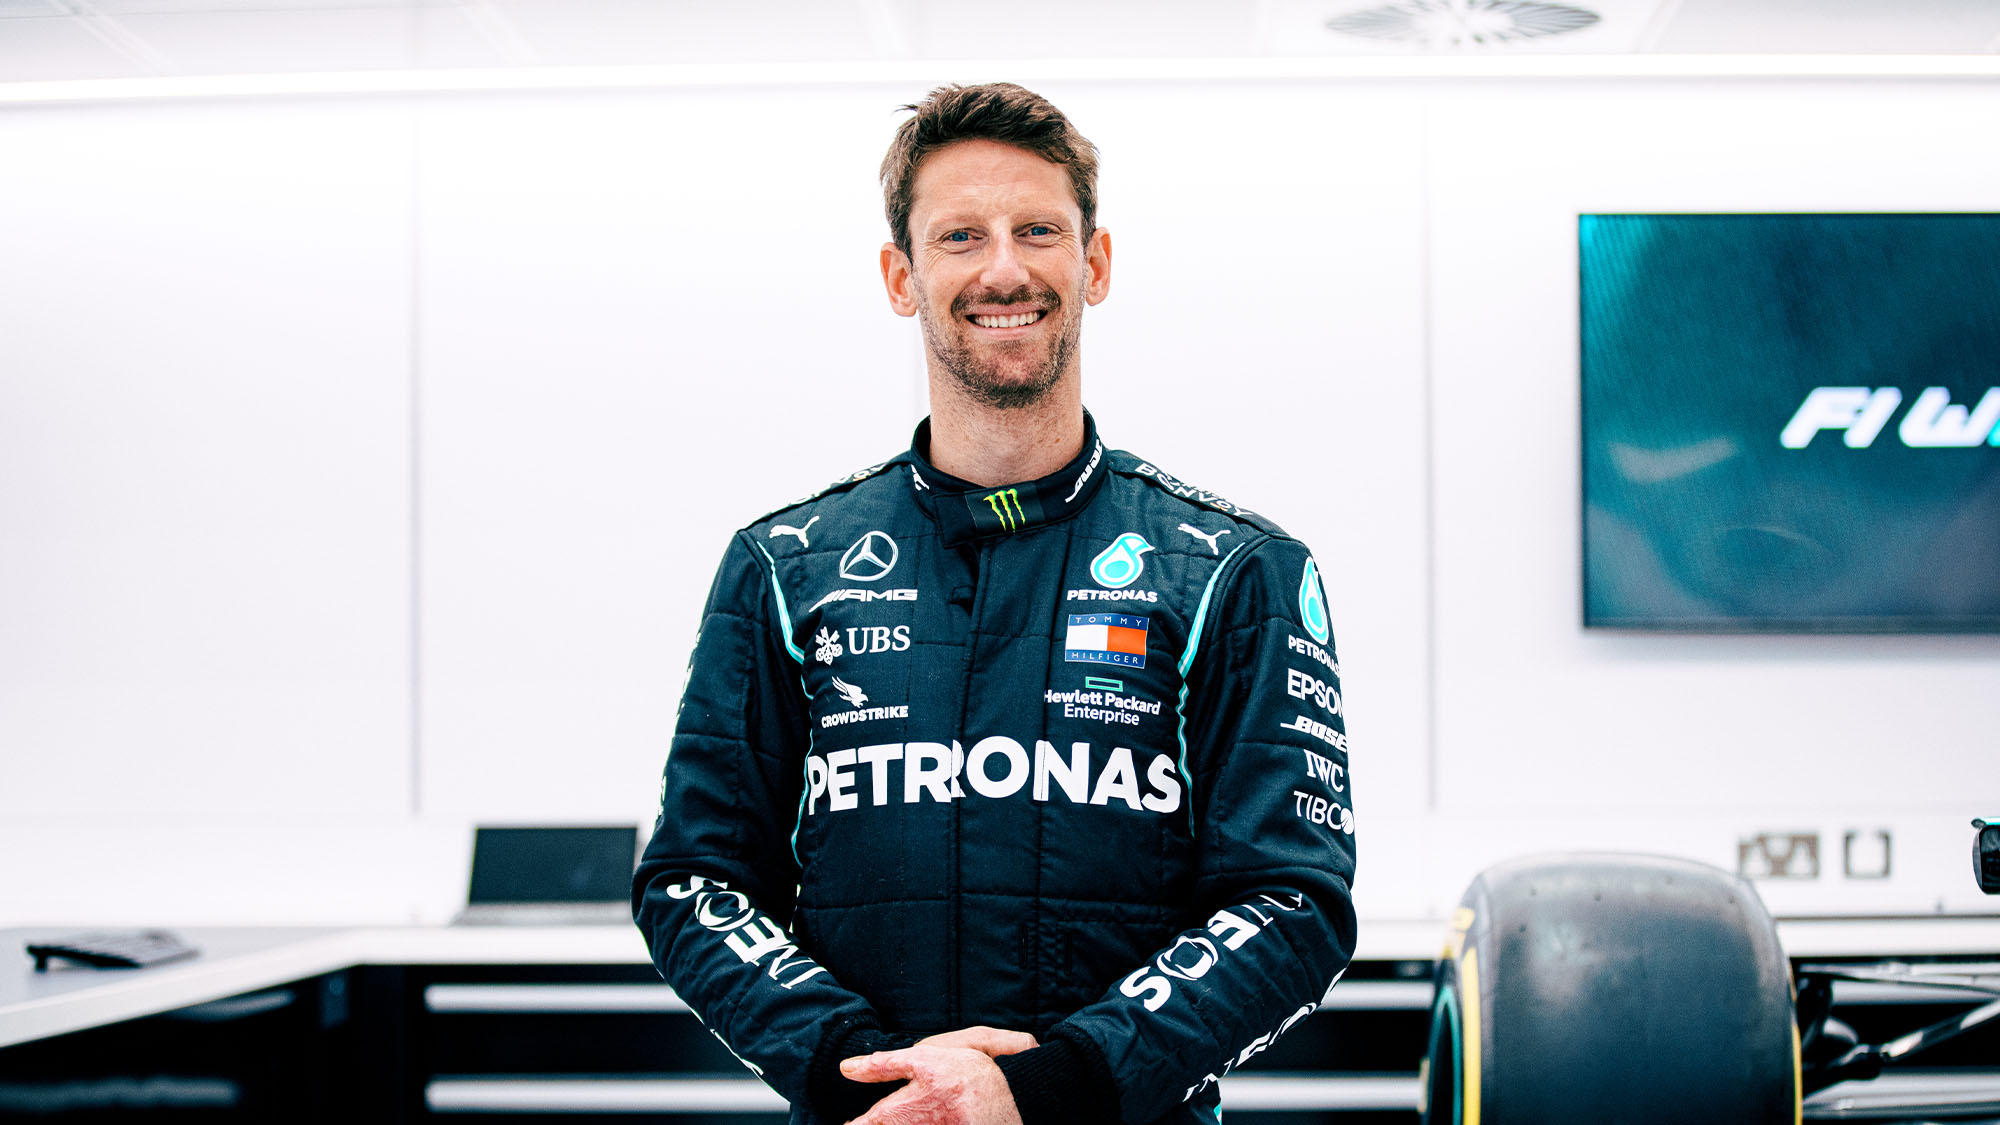 Romain Grosjean to drive Mercedes F1 car in one-off test return